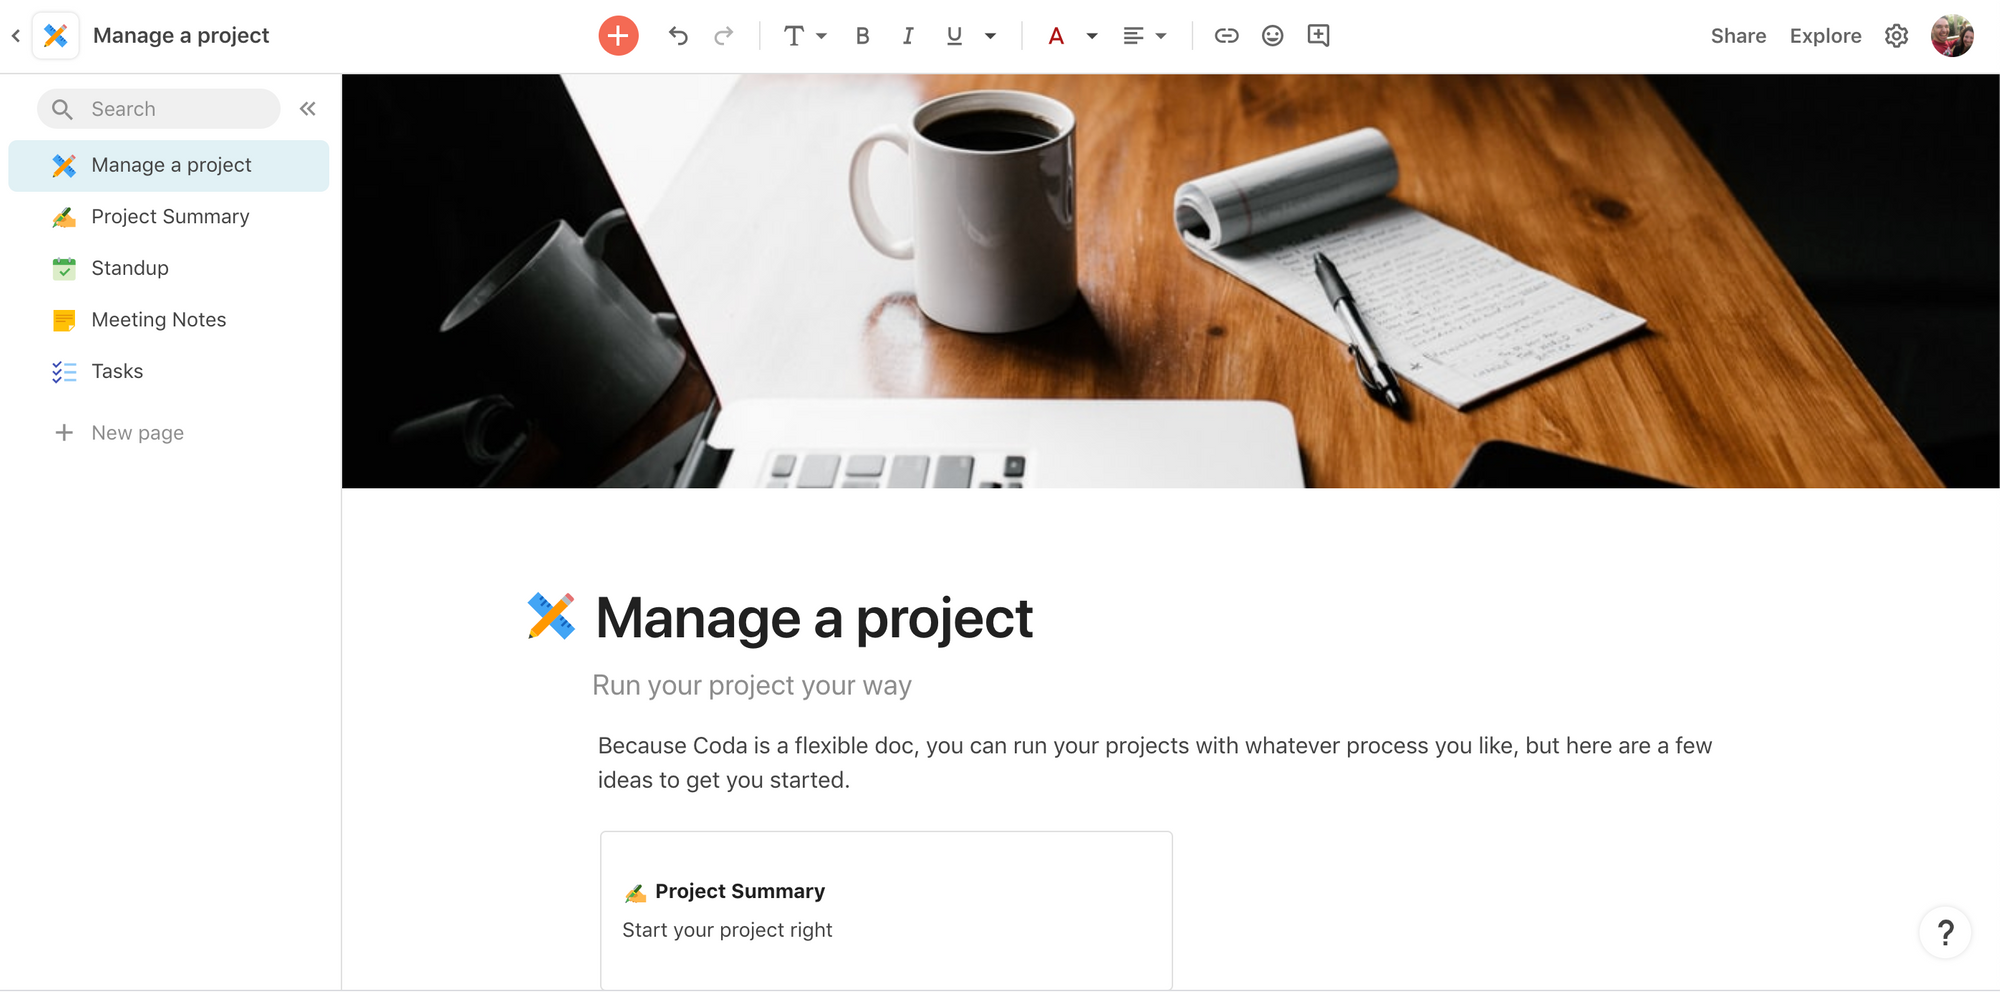 Coda Review: Improved Workflow & Docs Tool